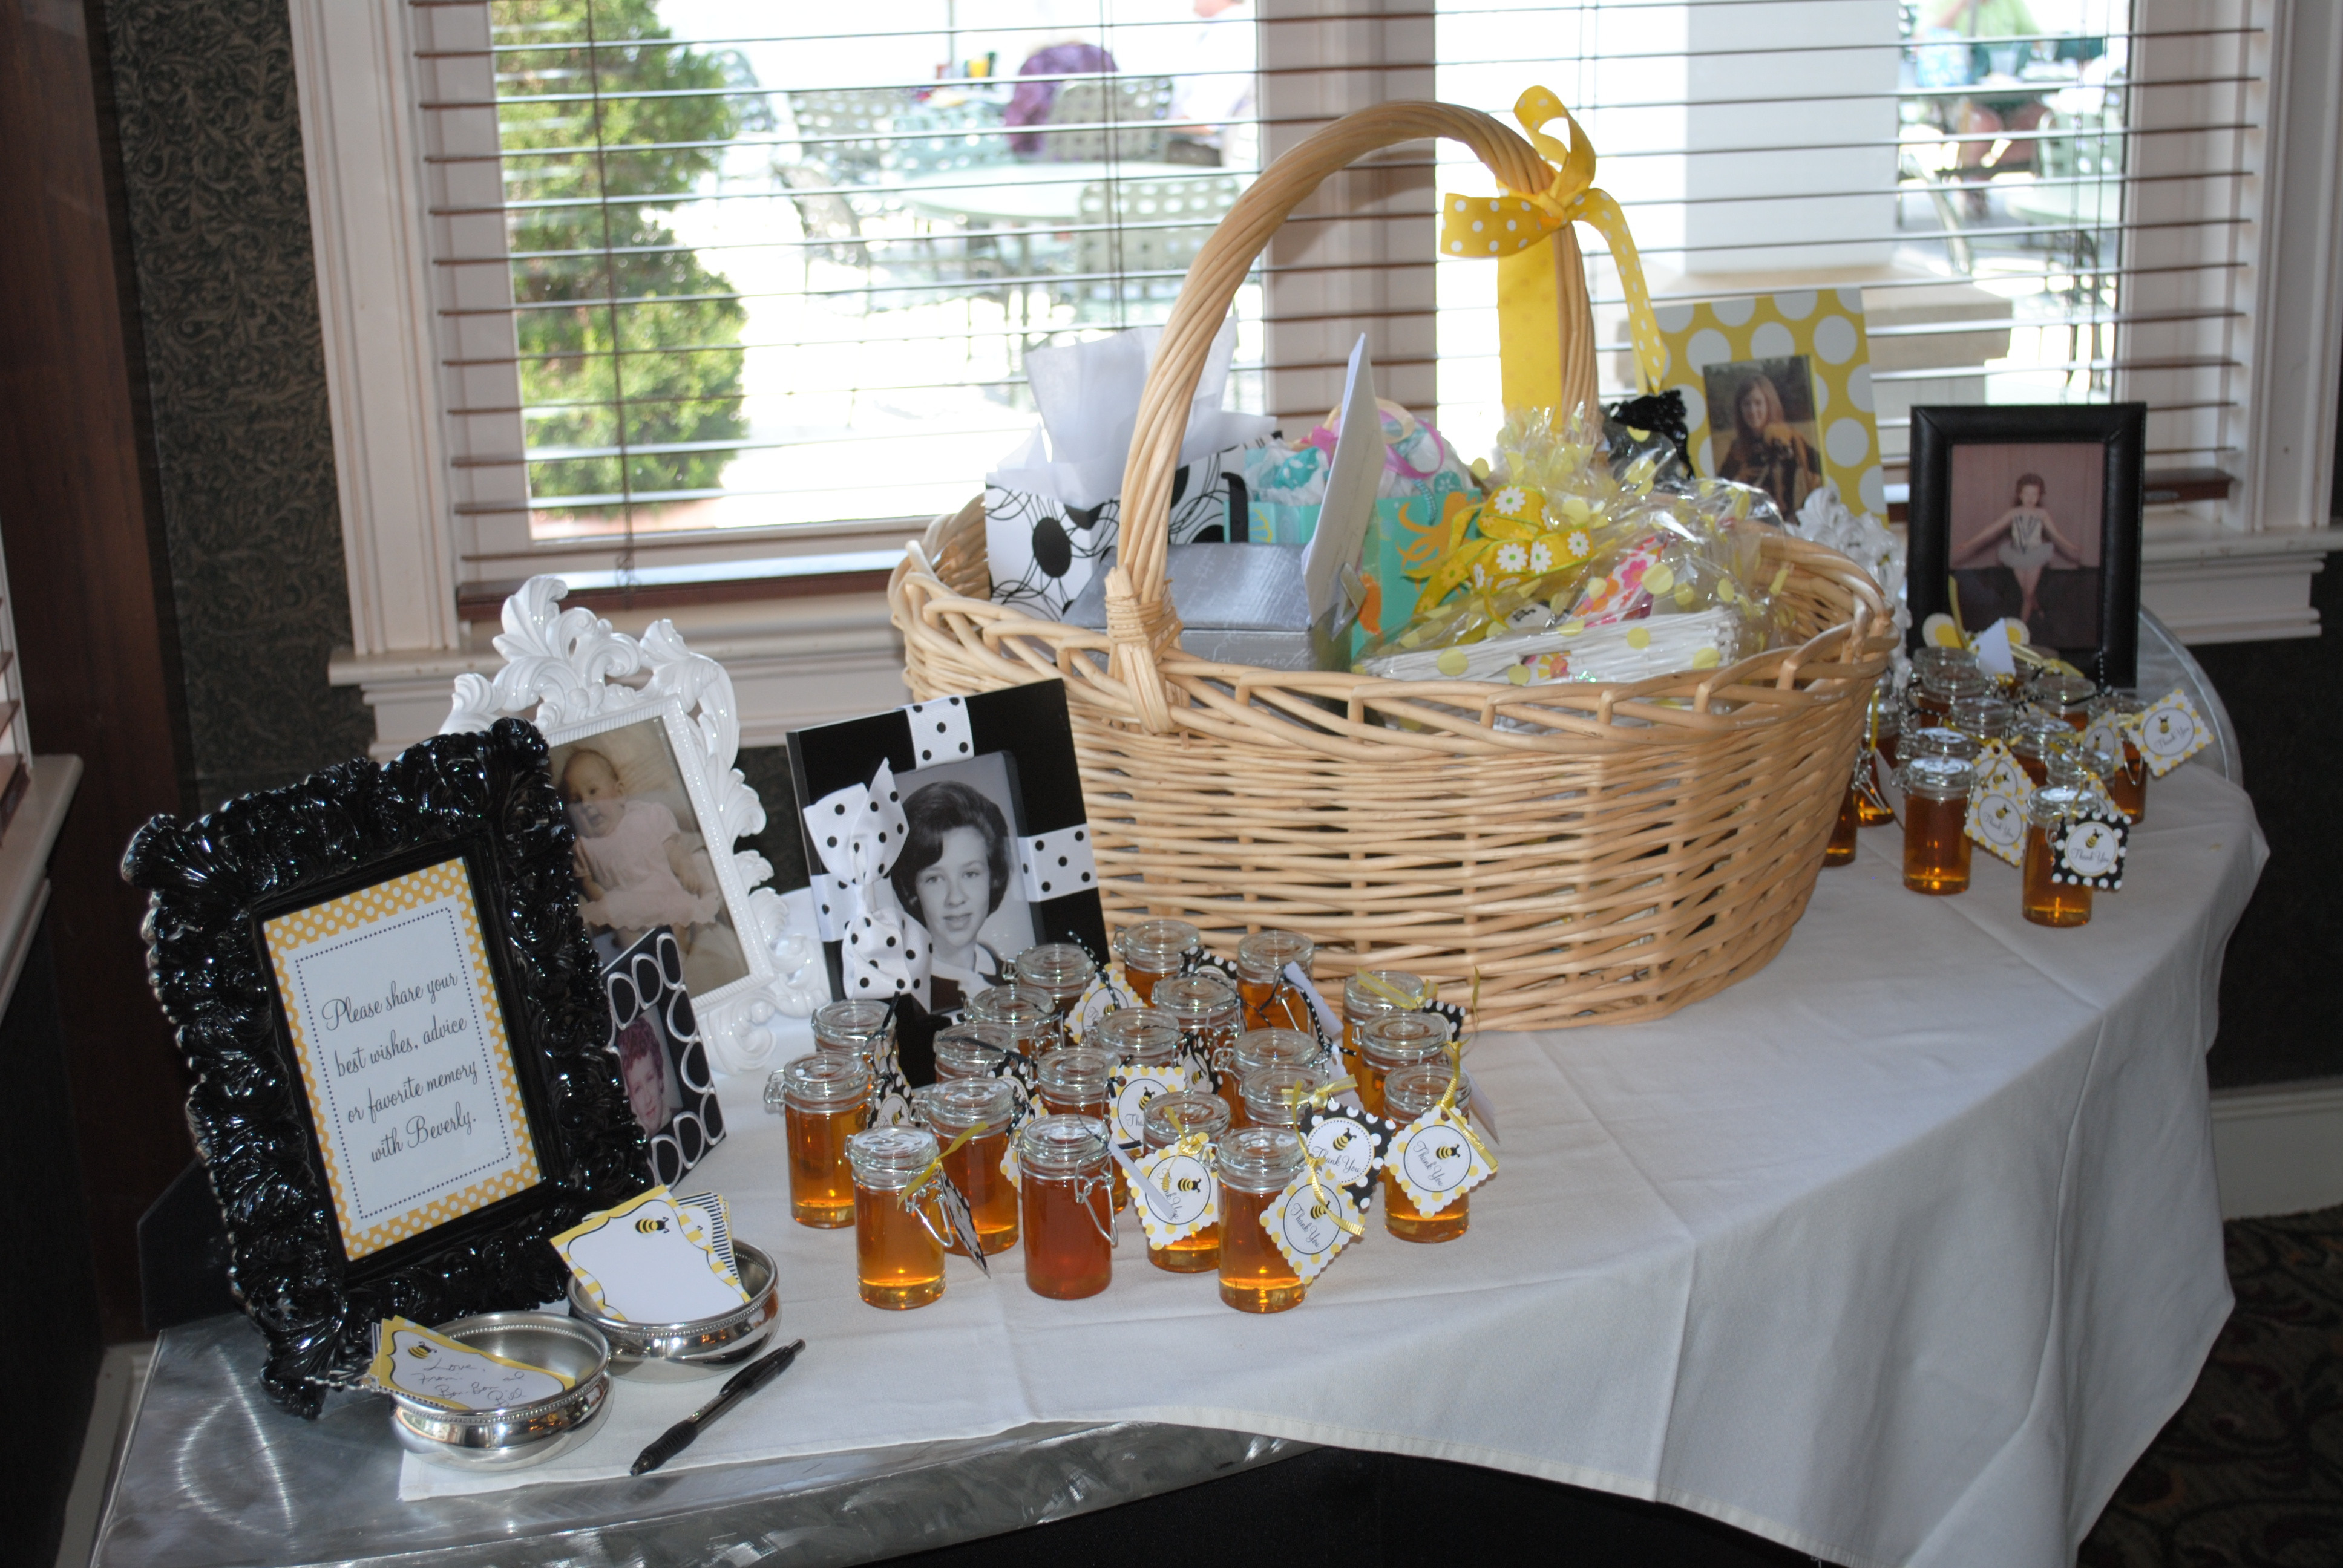 Best ideas about 60th Birthday Decor . Save or Pin Our Parties Bee 60th Birthday Party Now.